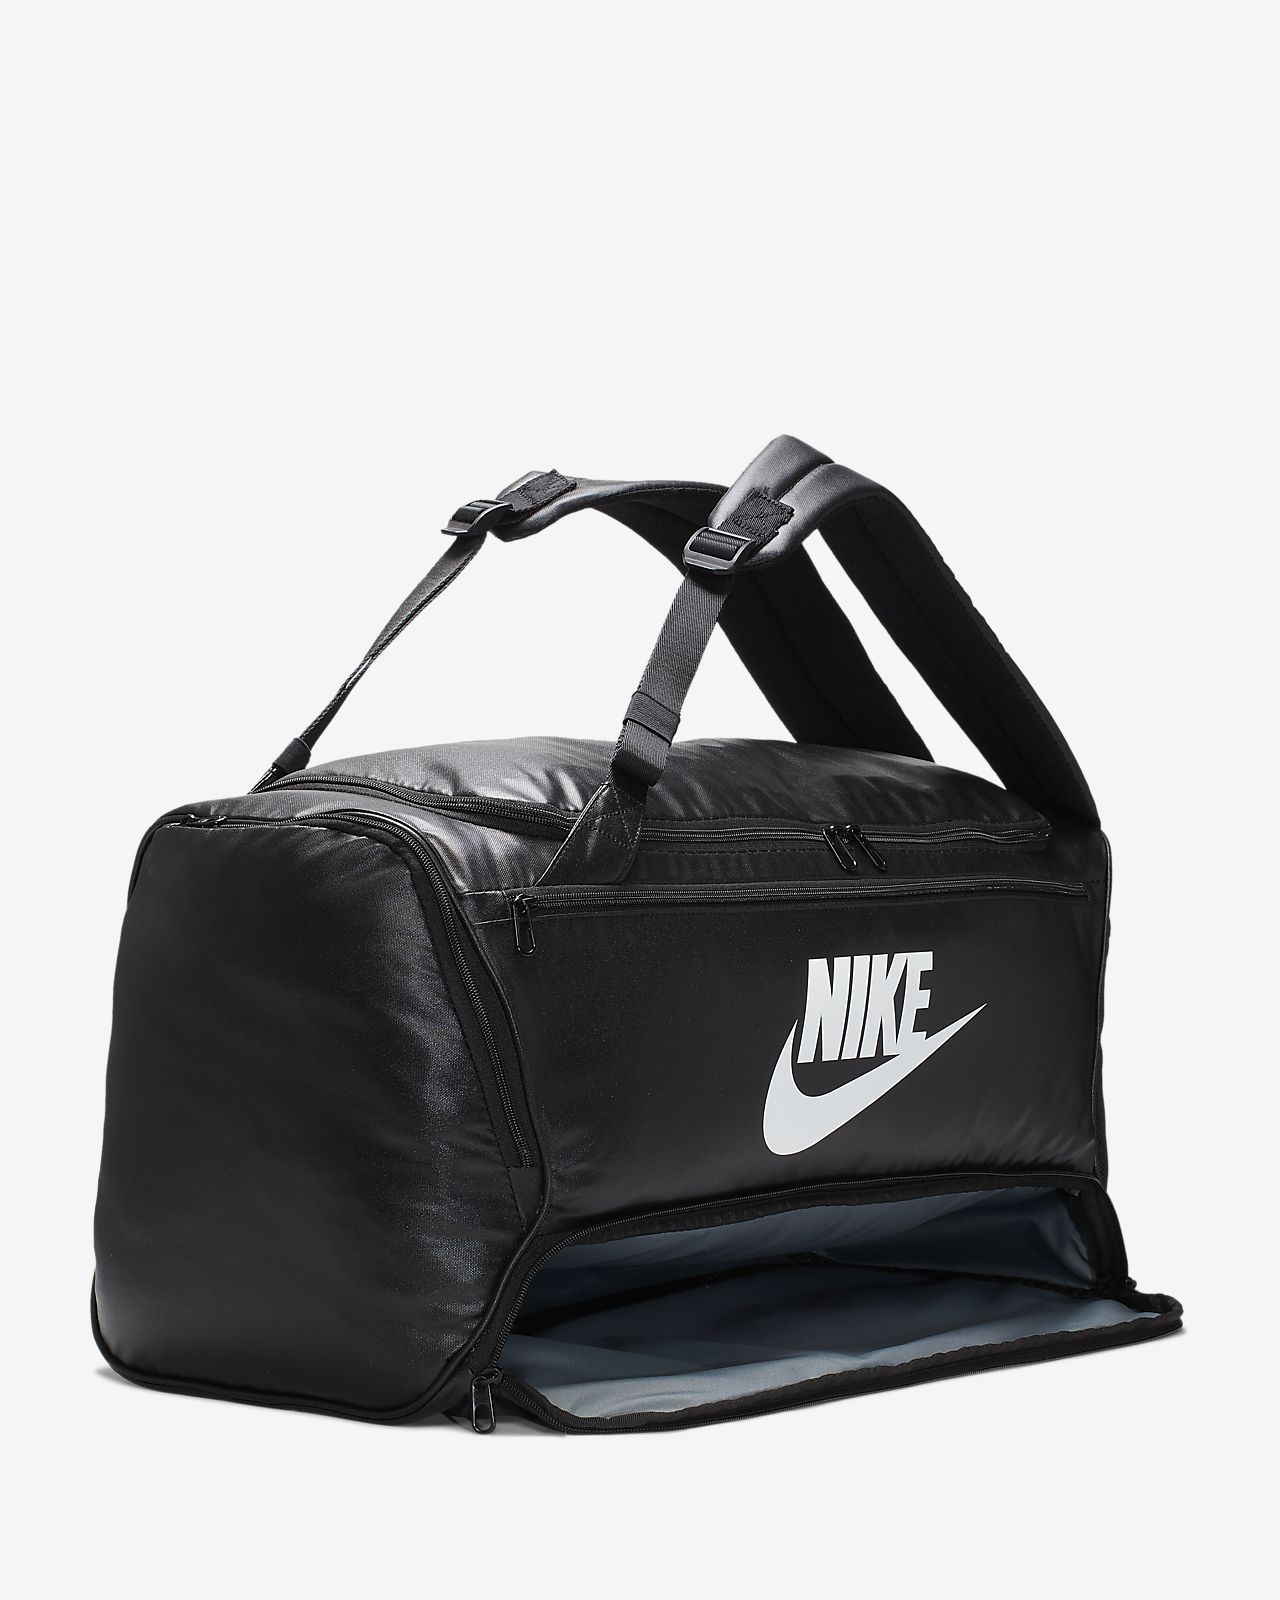 nike max air duffel bag